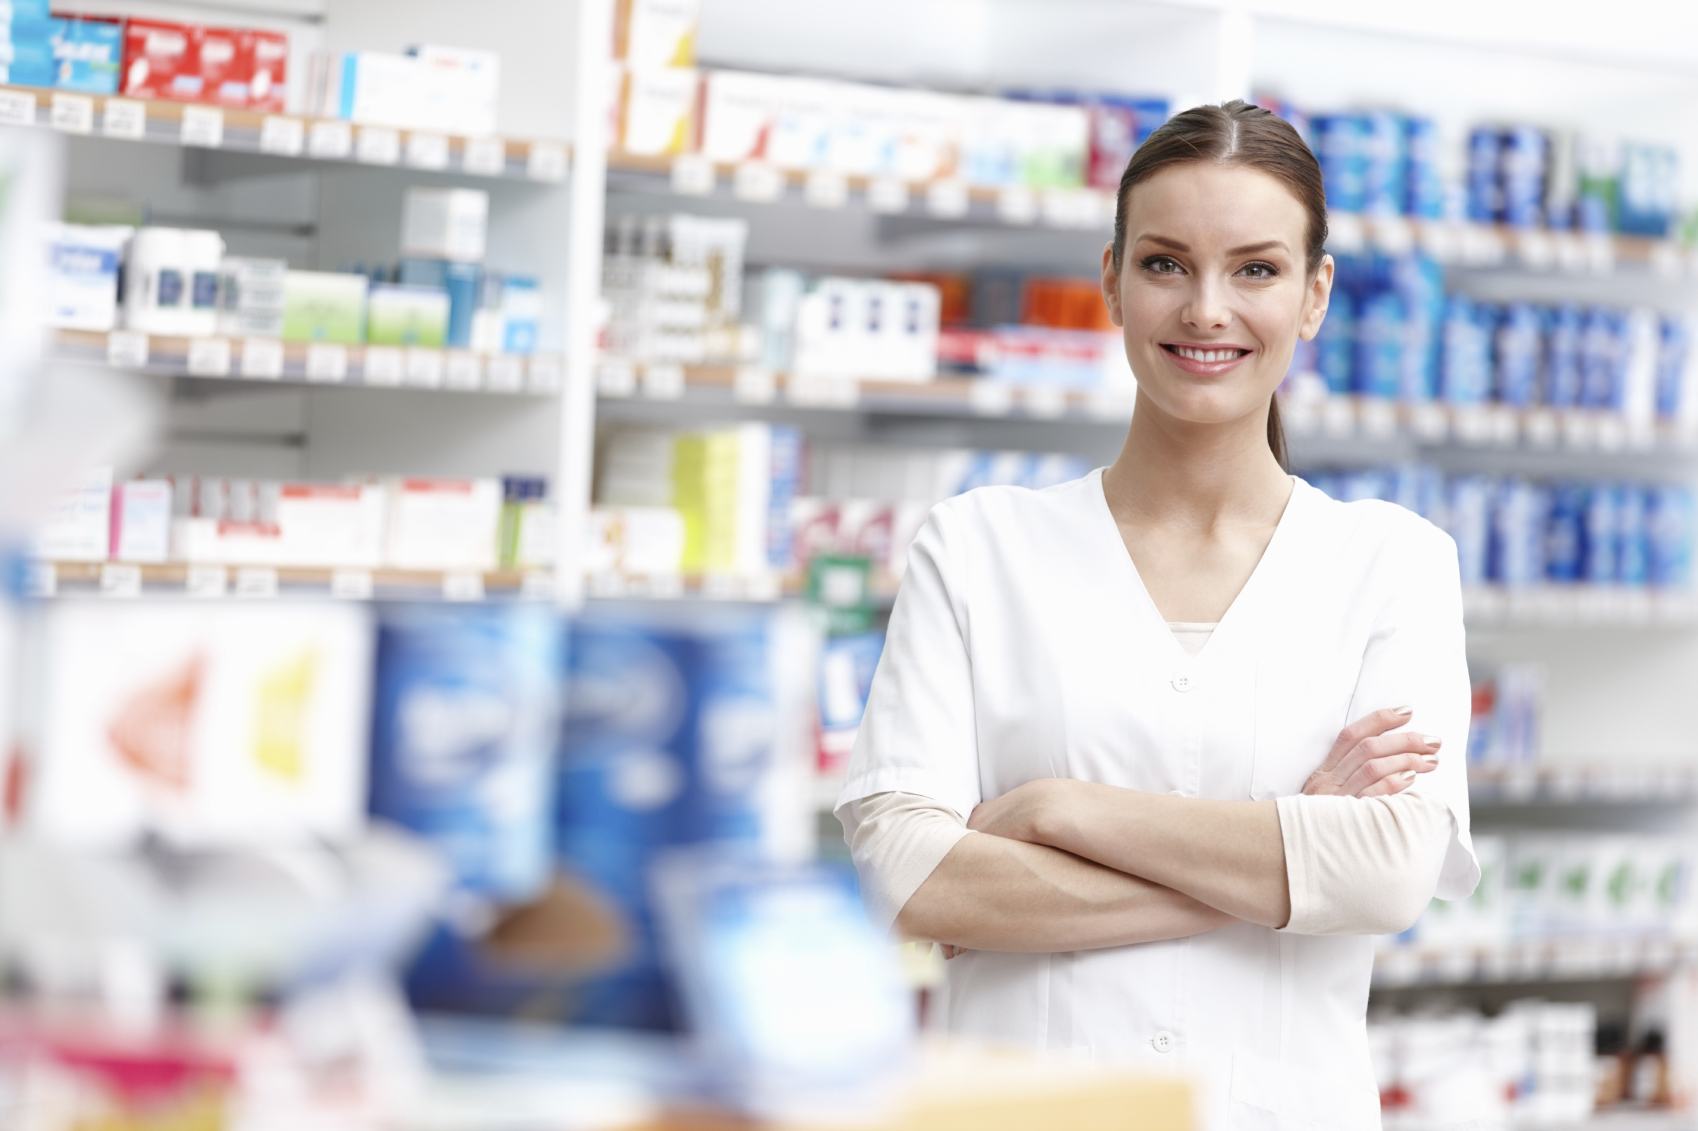 Portrait of young pharmacist smiling with hands folded at medical store